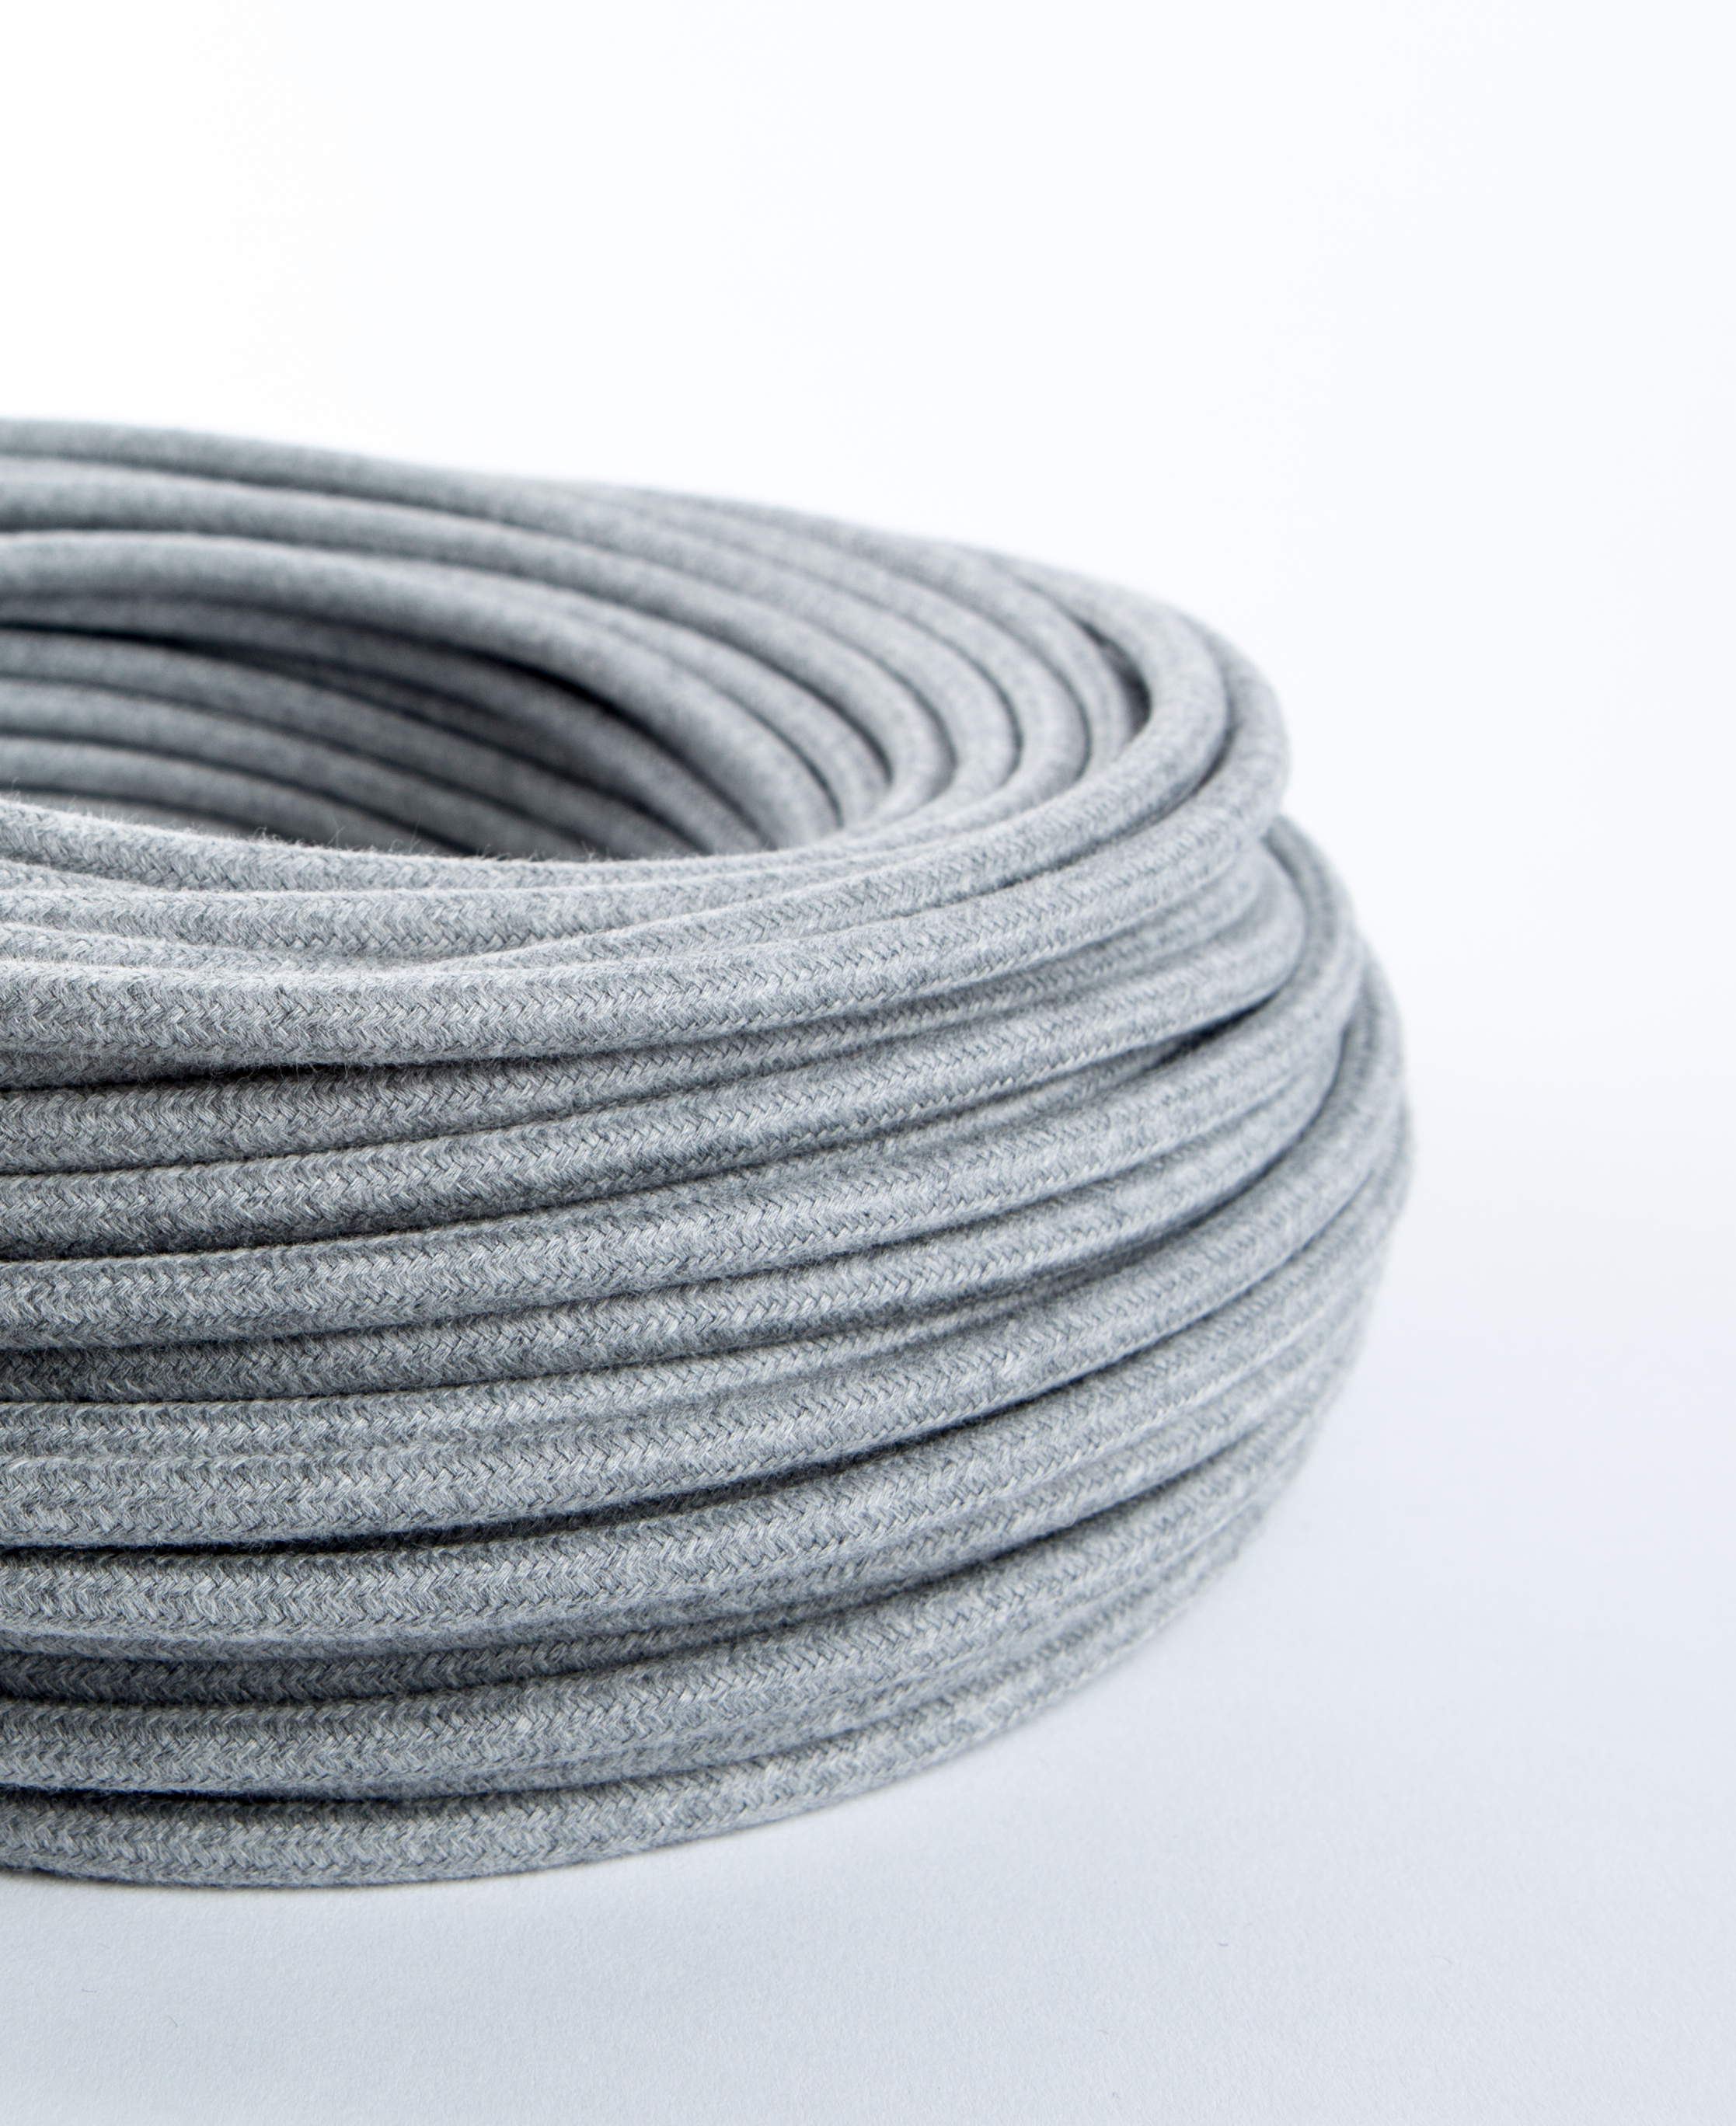 Fabric Lighting Cord In Pale Grey Felt Fabric Cable For Lighting Pale Grey Felt Fabric Cable Lighting Tactile Touch Amp